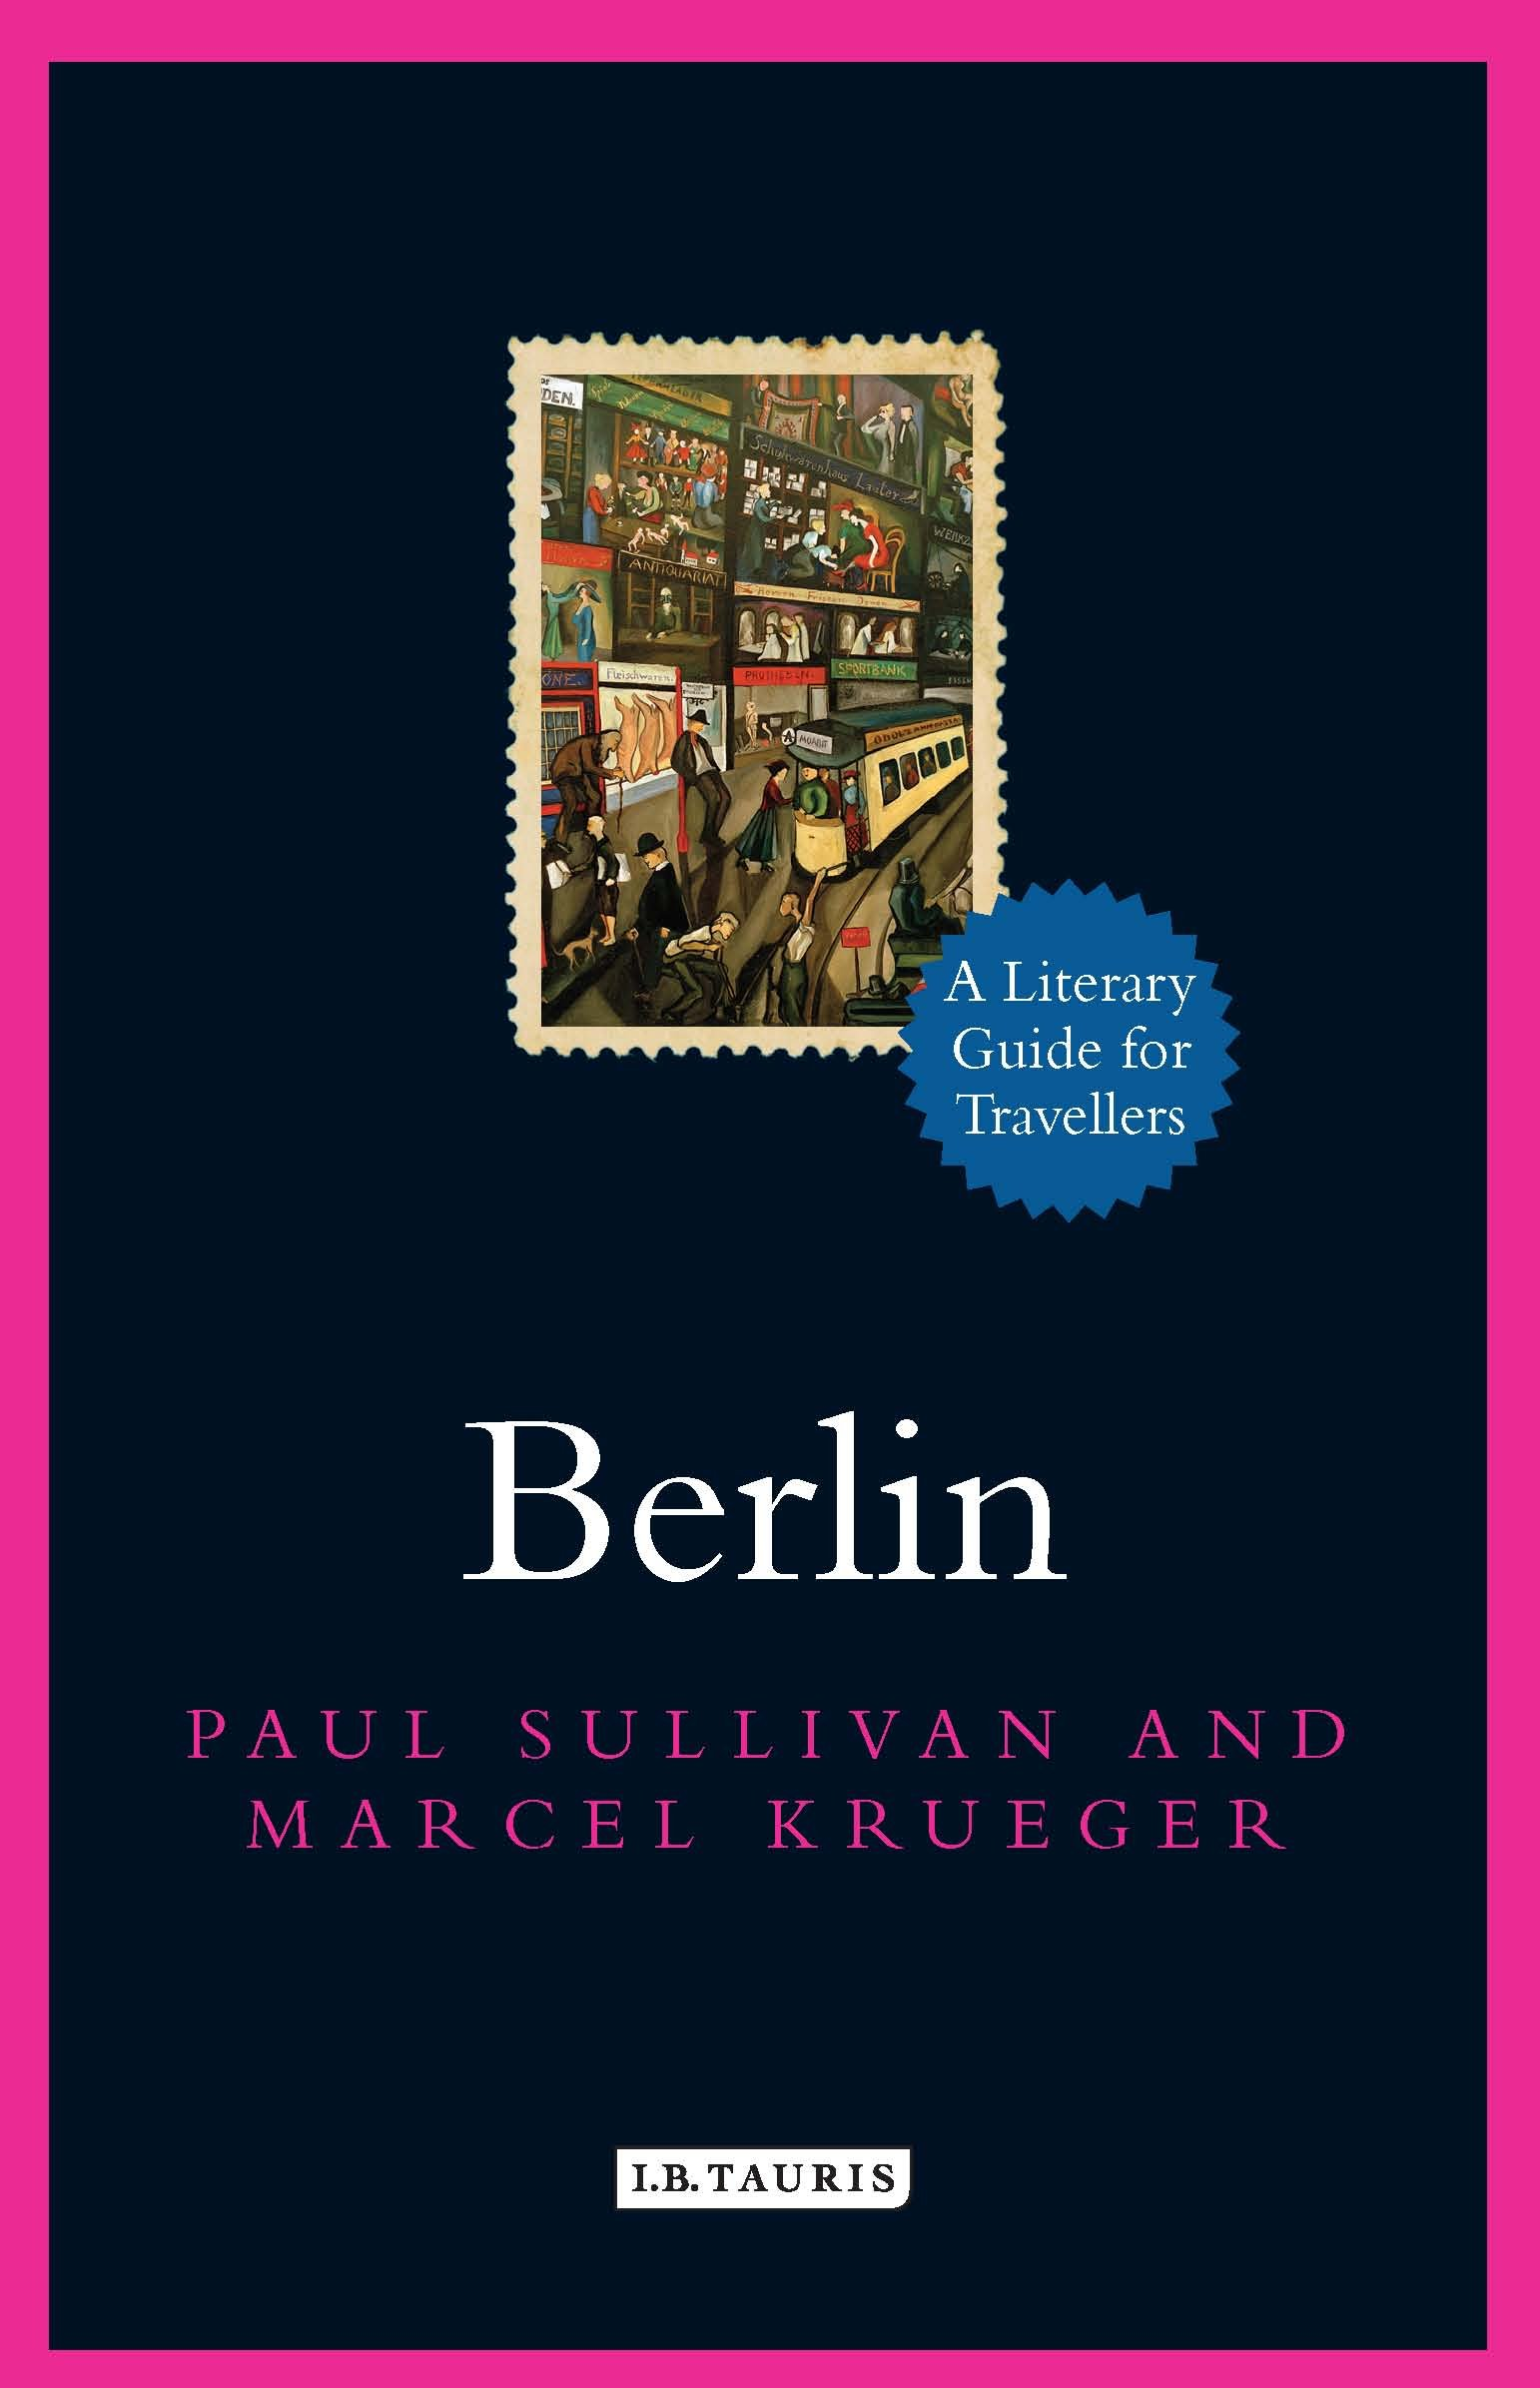 Berlin Literary Guide Travellers Guides